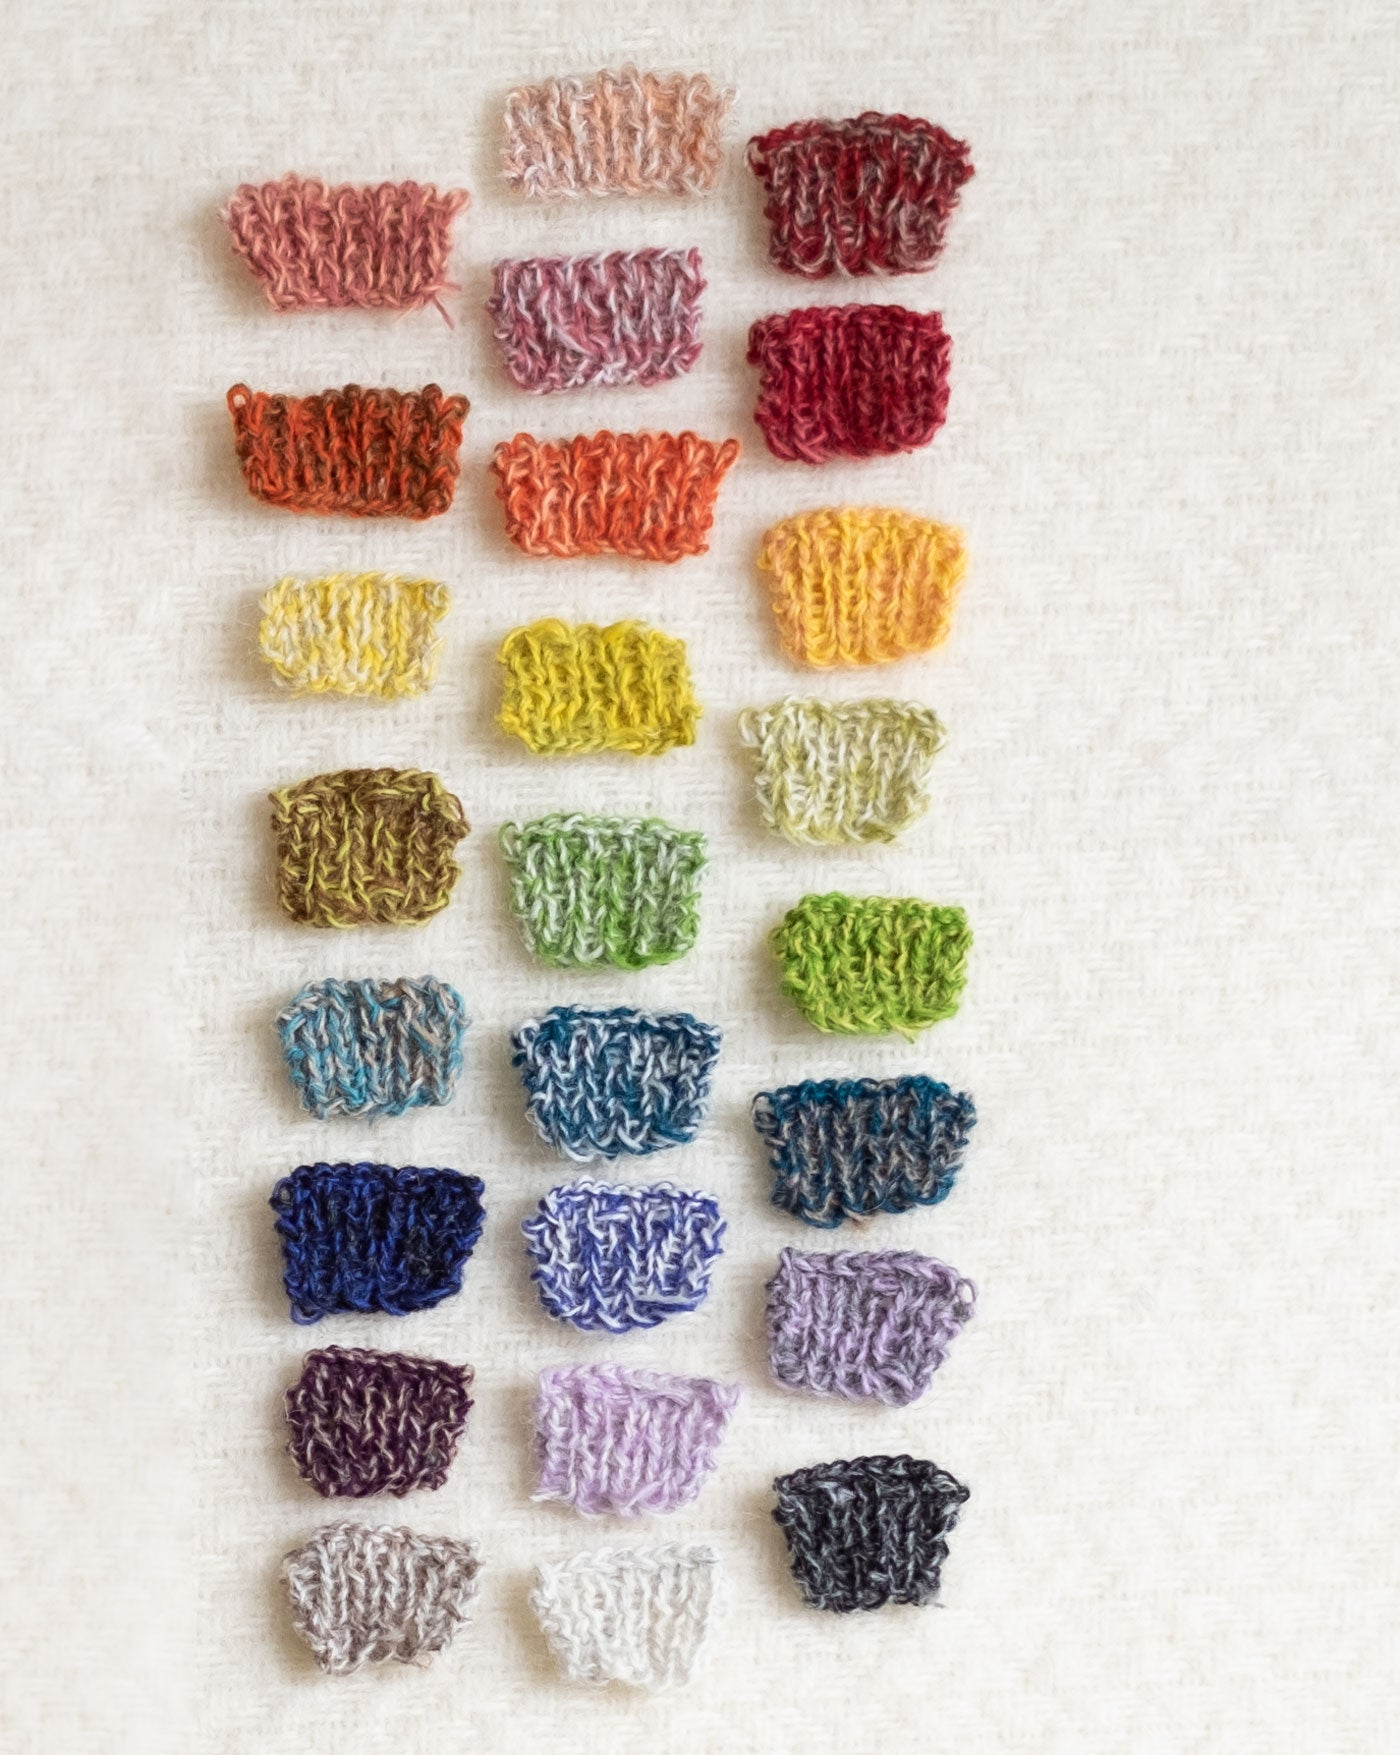 25 tiny knitting swatches in a rainbow of various combinations of two-color marls are laid out neatly on a soft, fuzzy, white woven wool background.